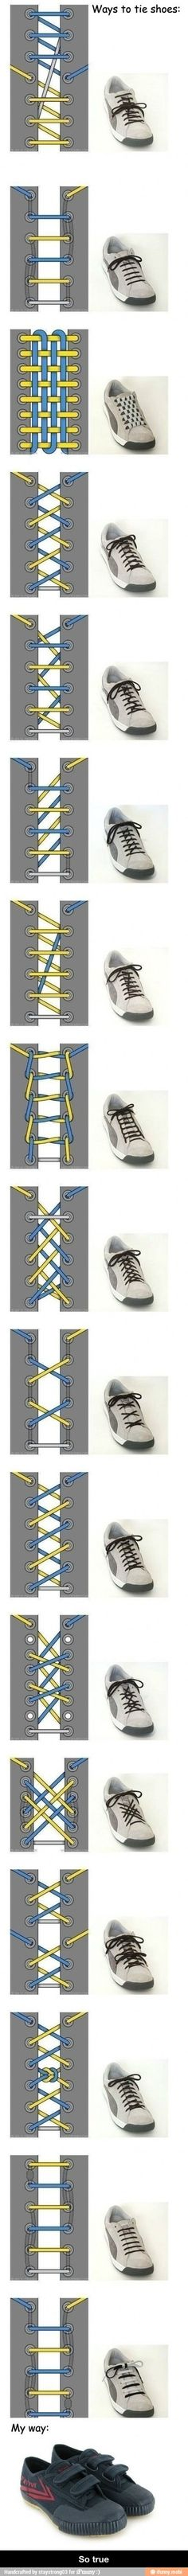 MULTIPLE cool ways to tie your shoes!